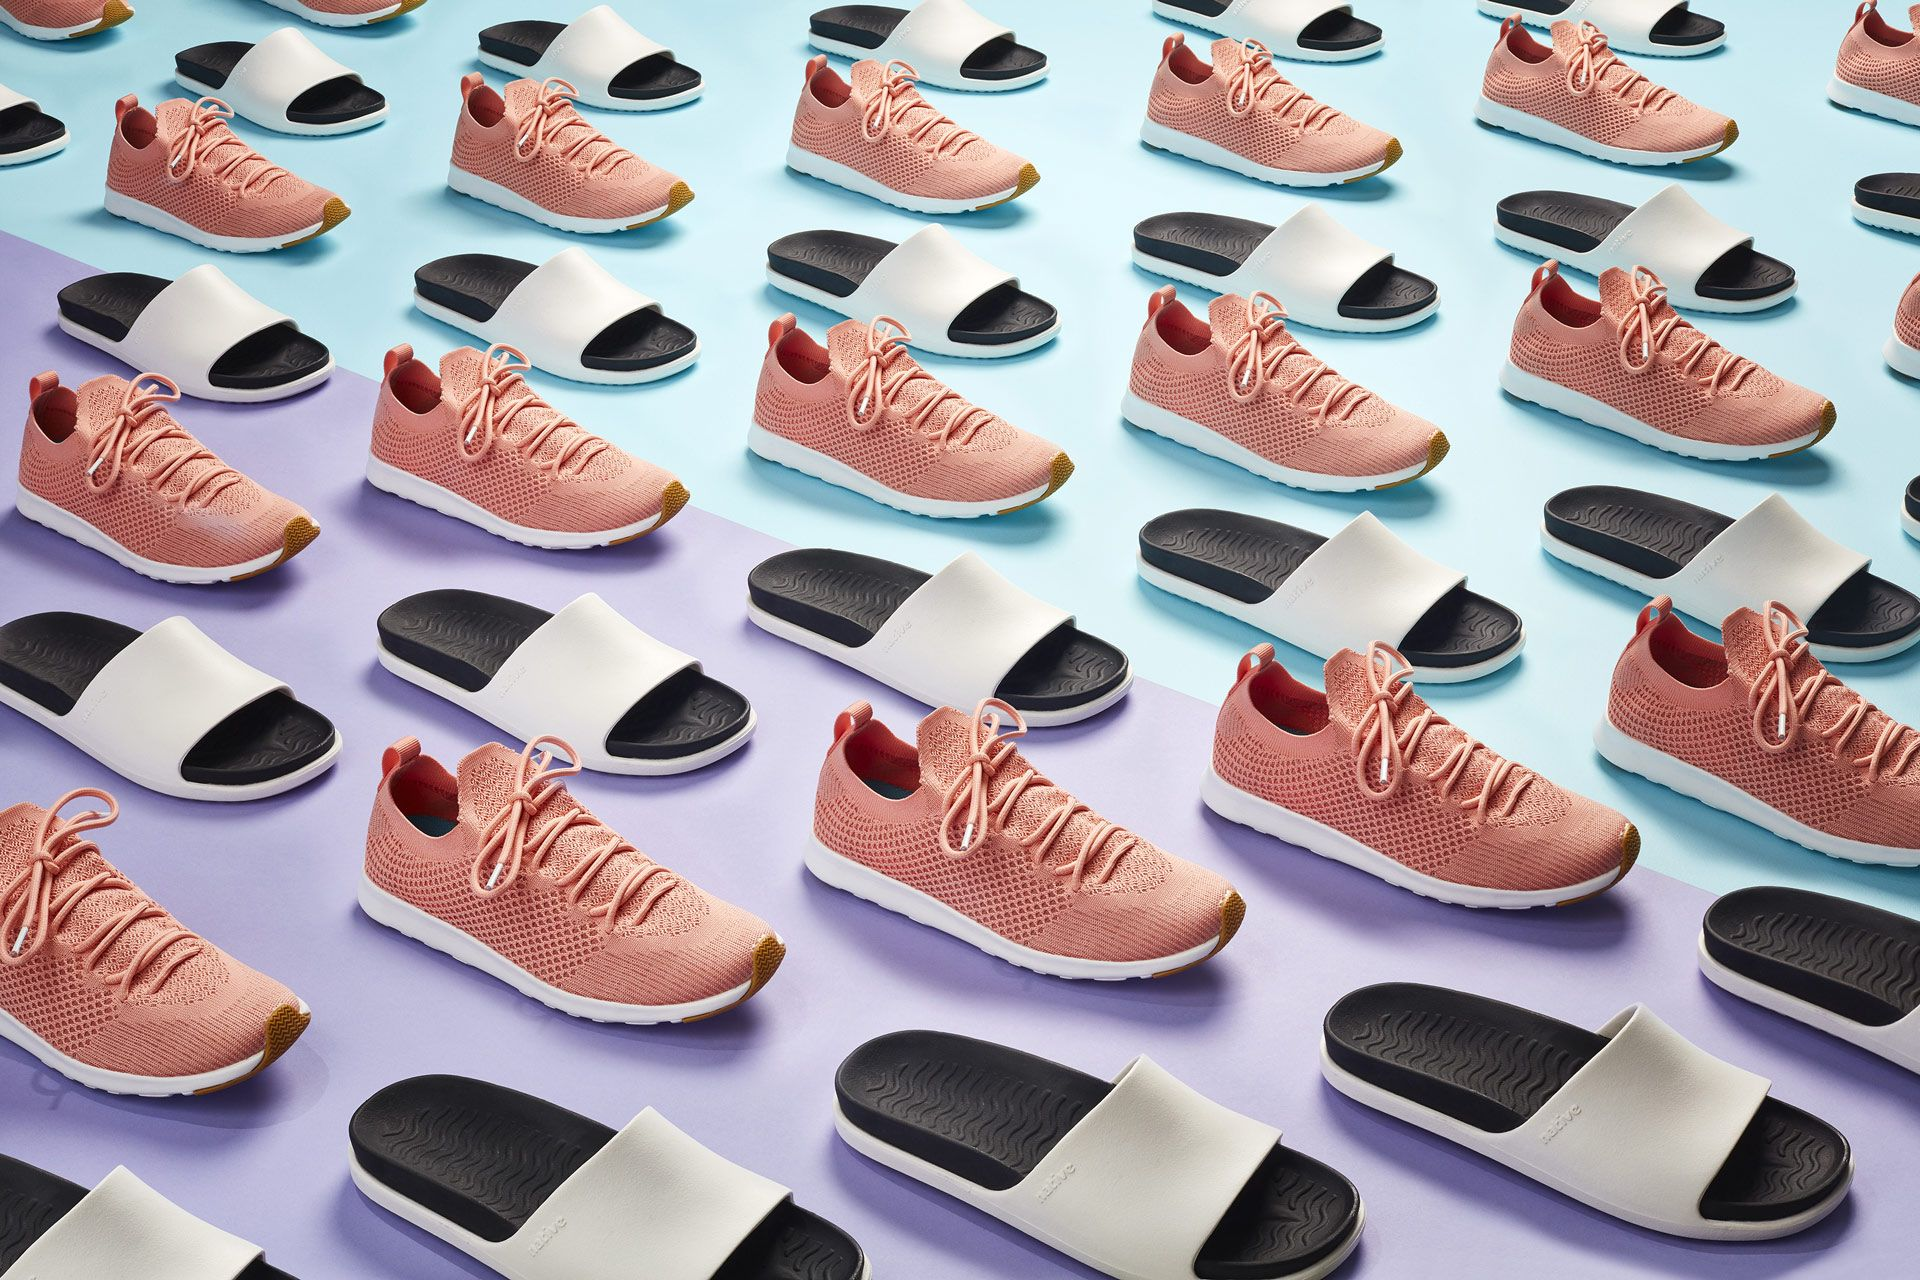 alternate lines of pink sneakers and white sandals on purple and light blue background by Mathieu Levesque for enRoute